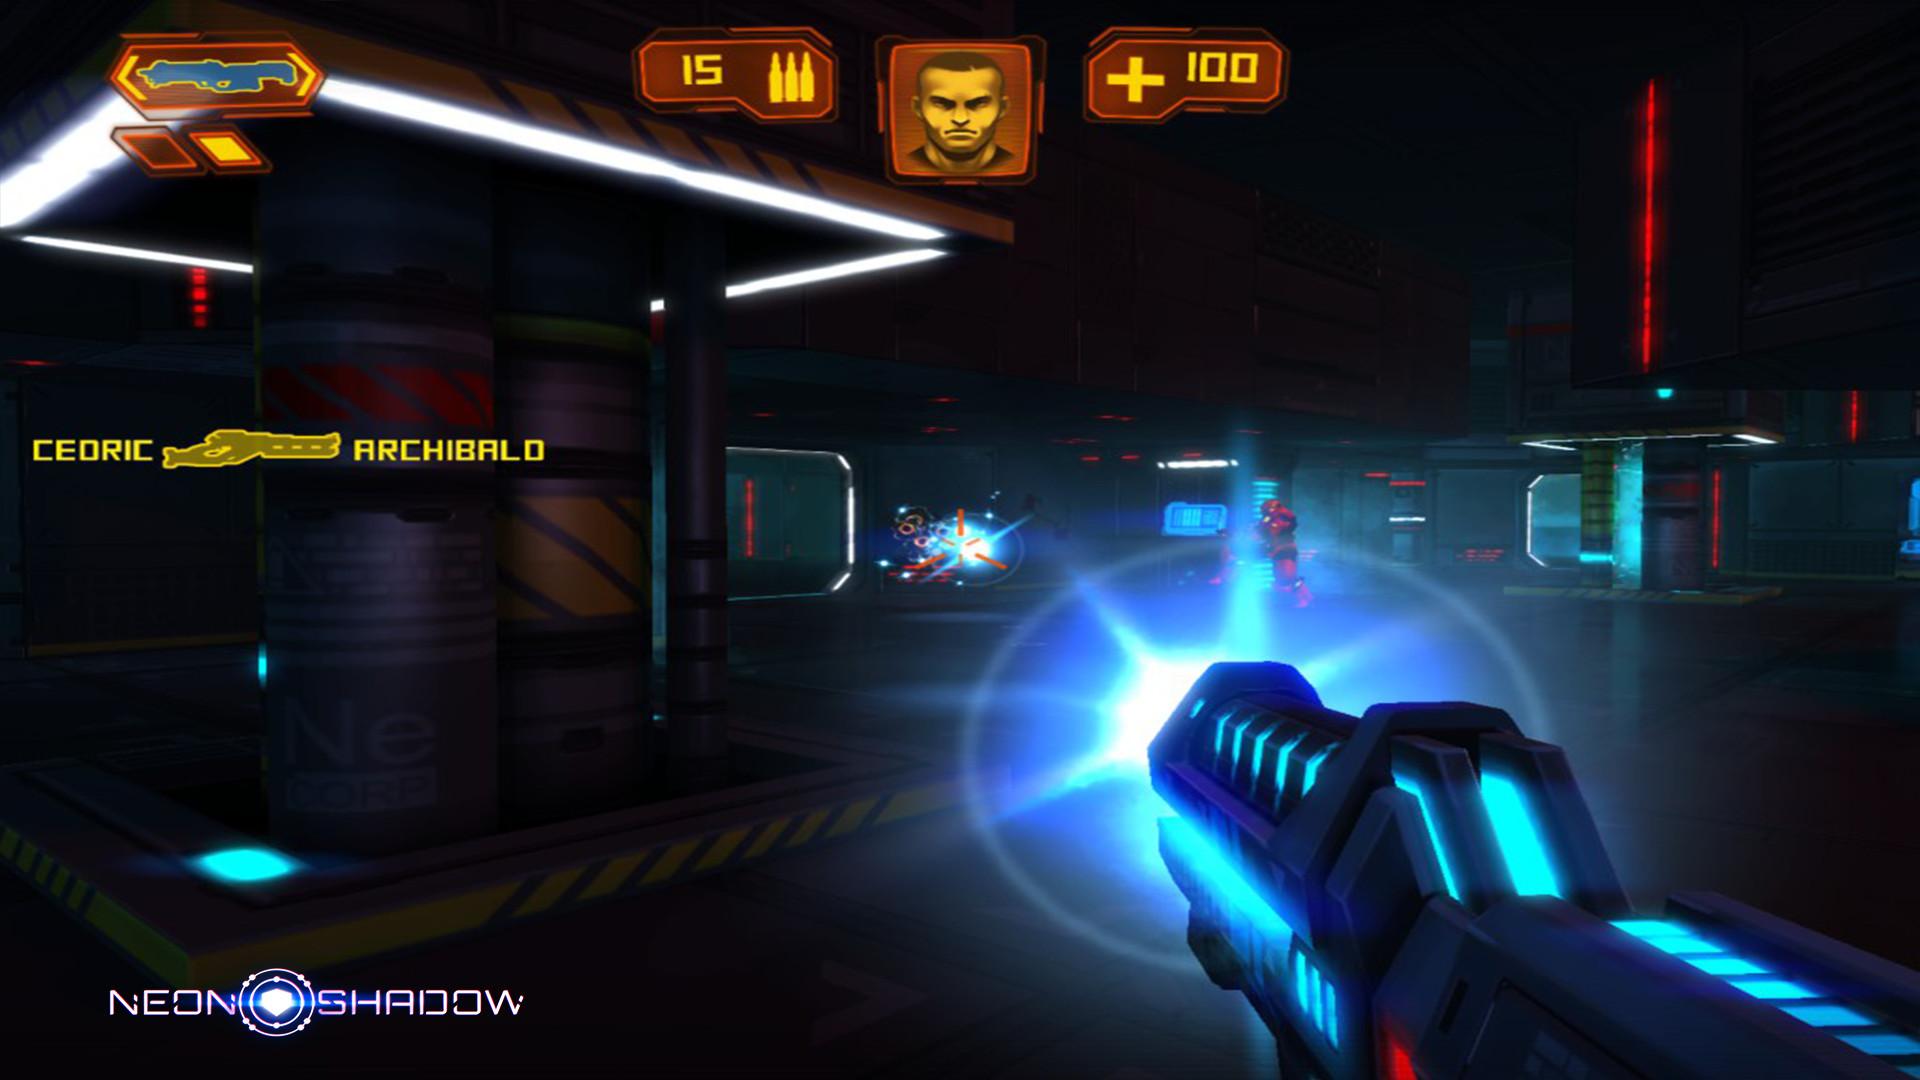 download neon shadow pc